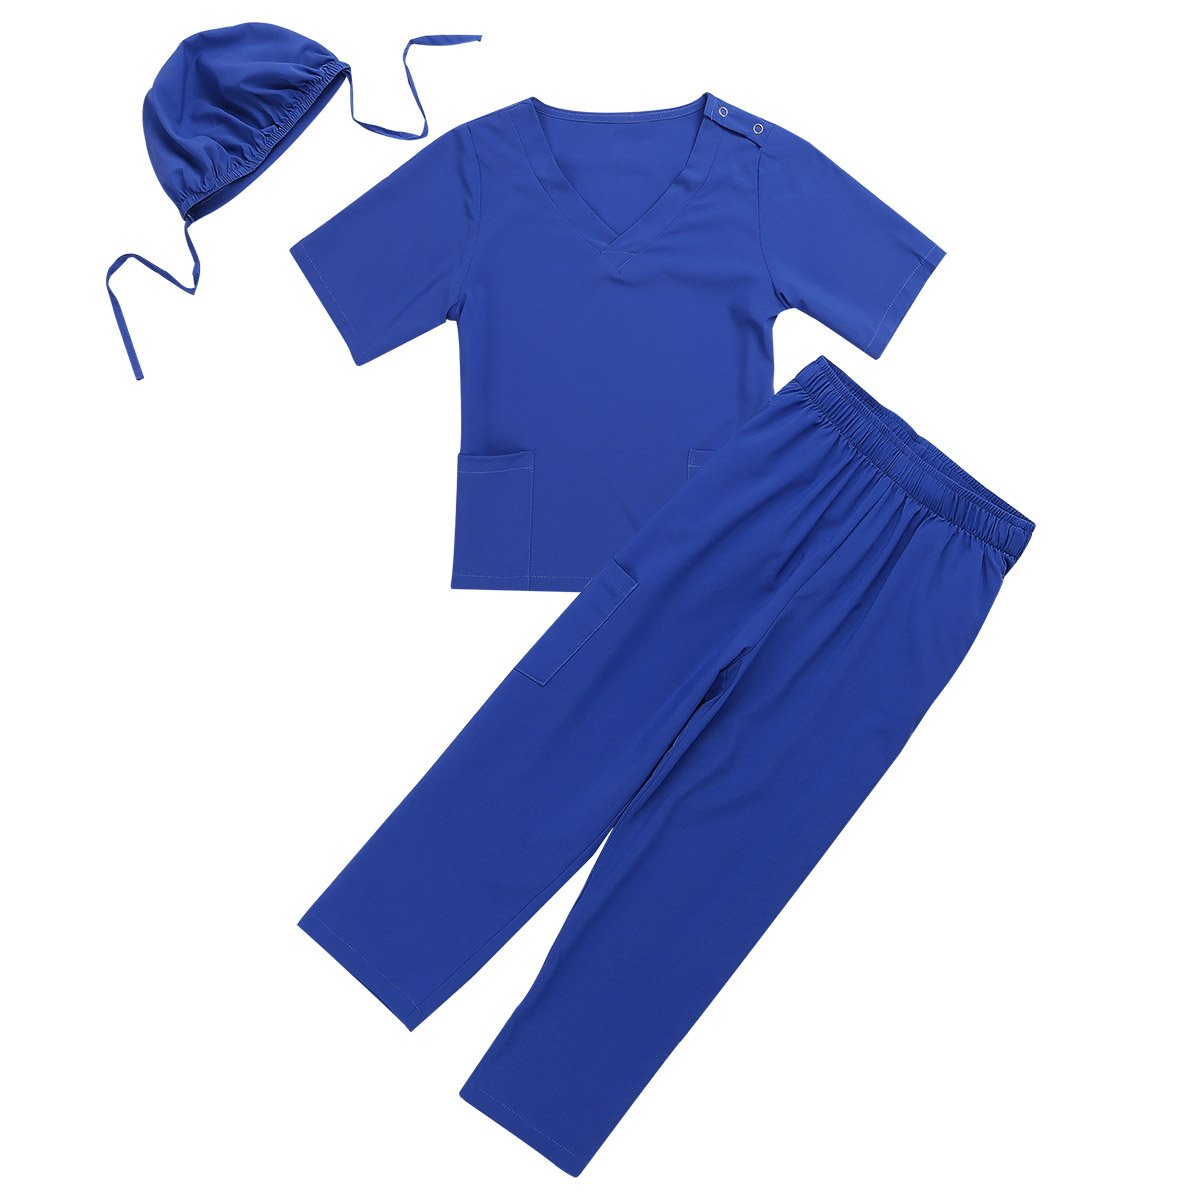 FEESHOW Childrens Scrubs Set Toddler Kids Doctor Surgeon Outfit Dress up Costumes Boys Girls Lab Coat Blue 2-3